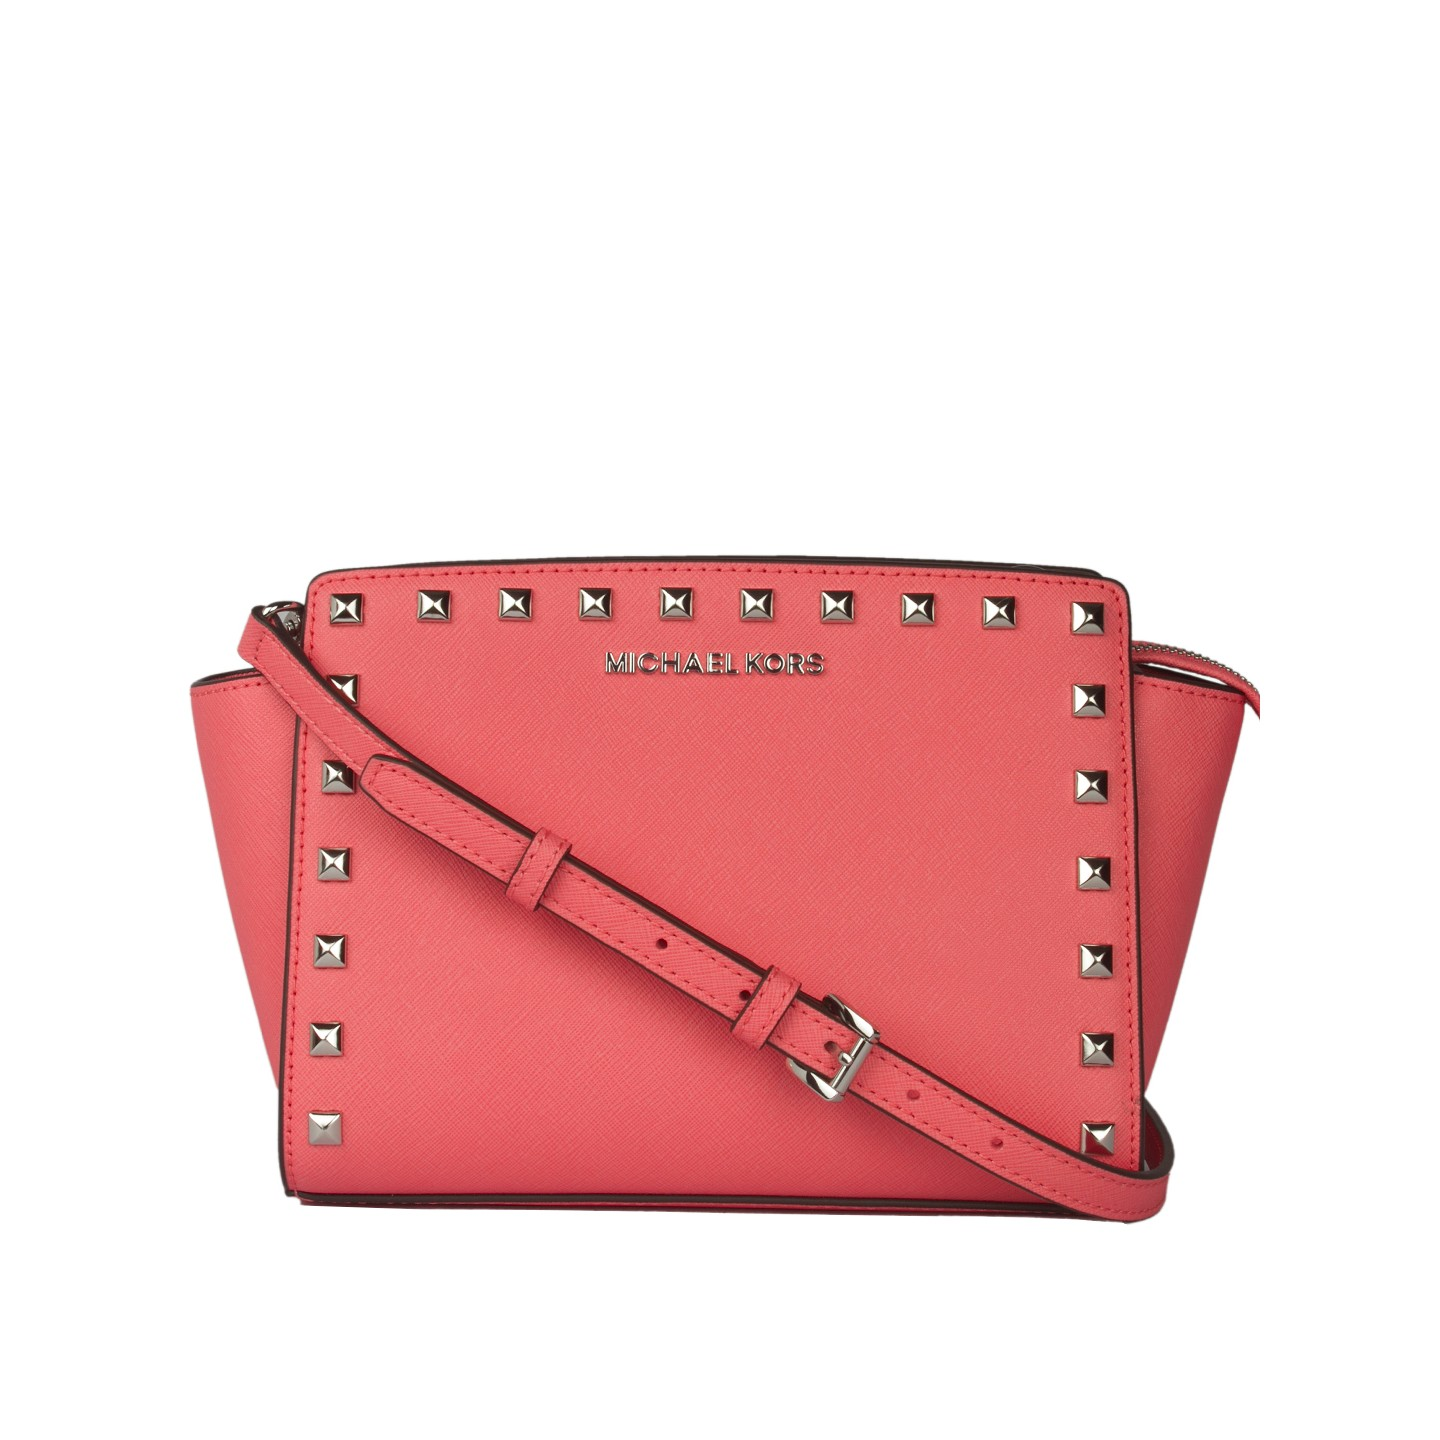 0a767d779b7f ... flap card holder studded wallet 96699 c57cd; canada michael kors selma  mini saffiano leather studded crossbody sling bag 01 a7872 79ac8